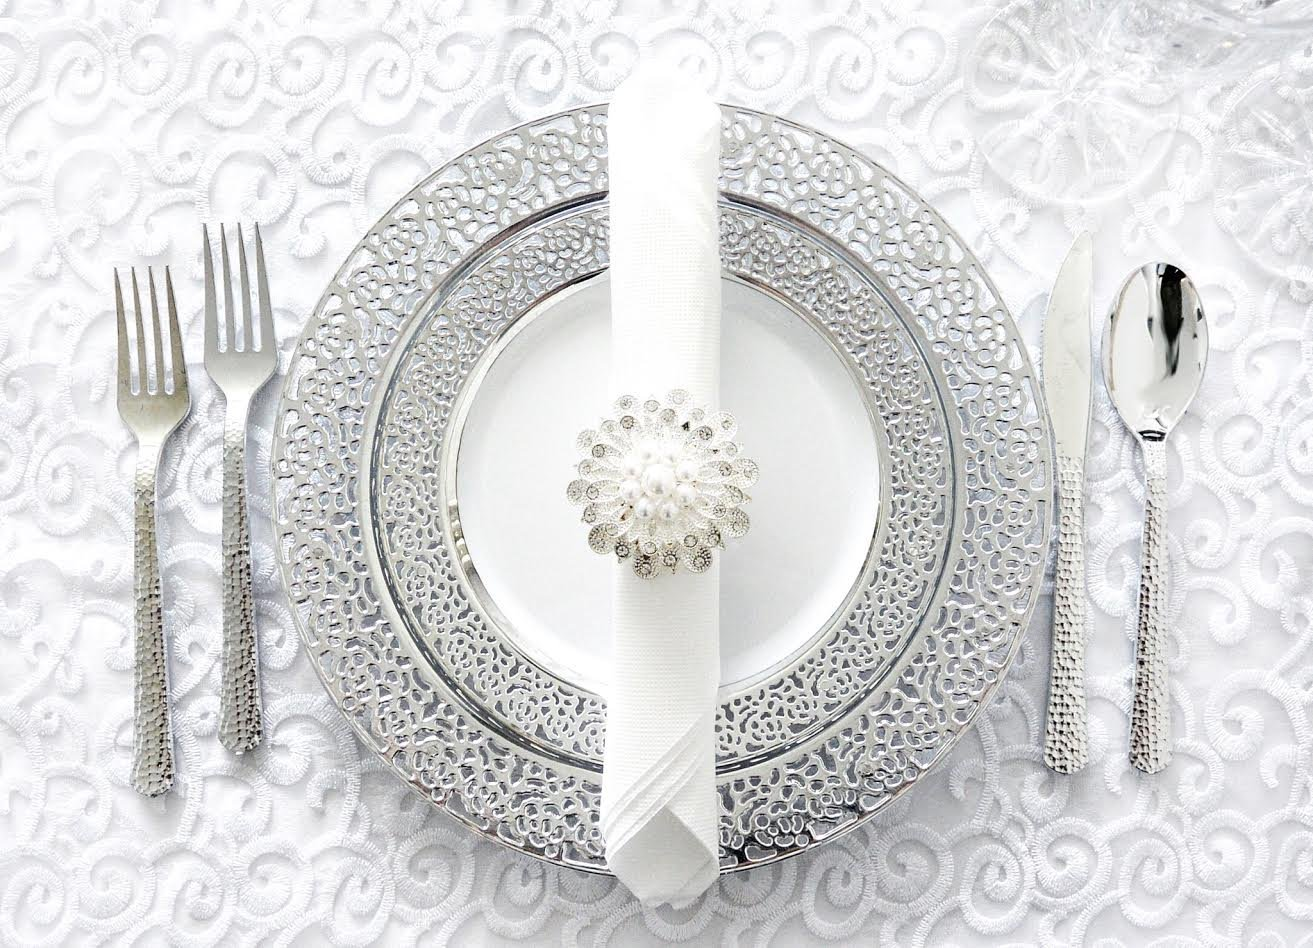 Royalty Settings Silver Inspiration Collection Lace Plastic Plates and Plastic Cutlery for 120 Persons, Includes 120 Dinner Plates, 120 Salad Plates, 240 Forks, 120 Knives, 120 Spoons, 60 Teaspoons